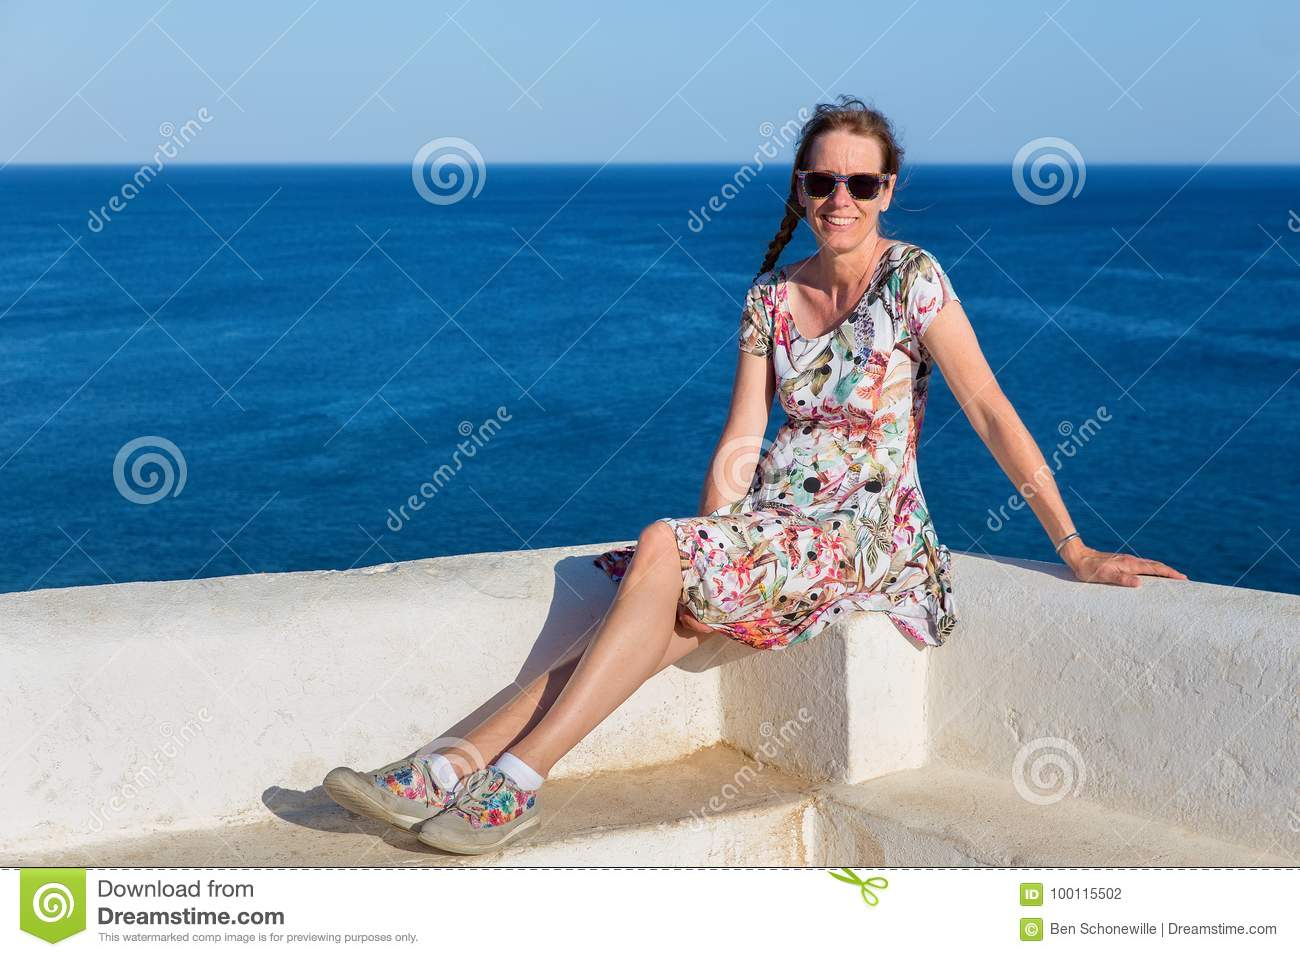 Dutch woman as tourist with blue sea